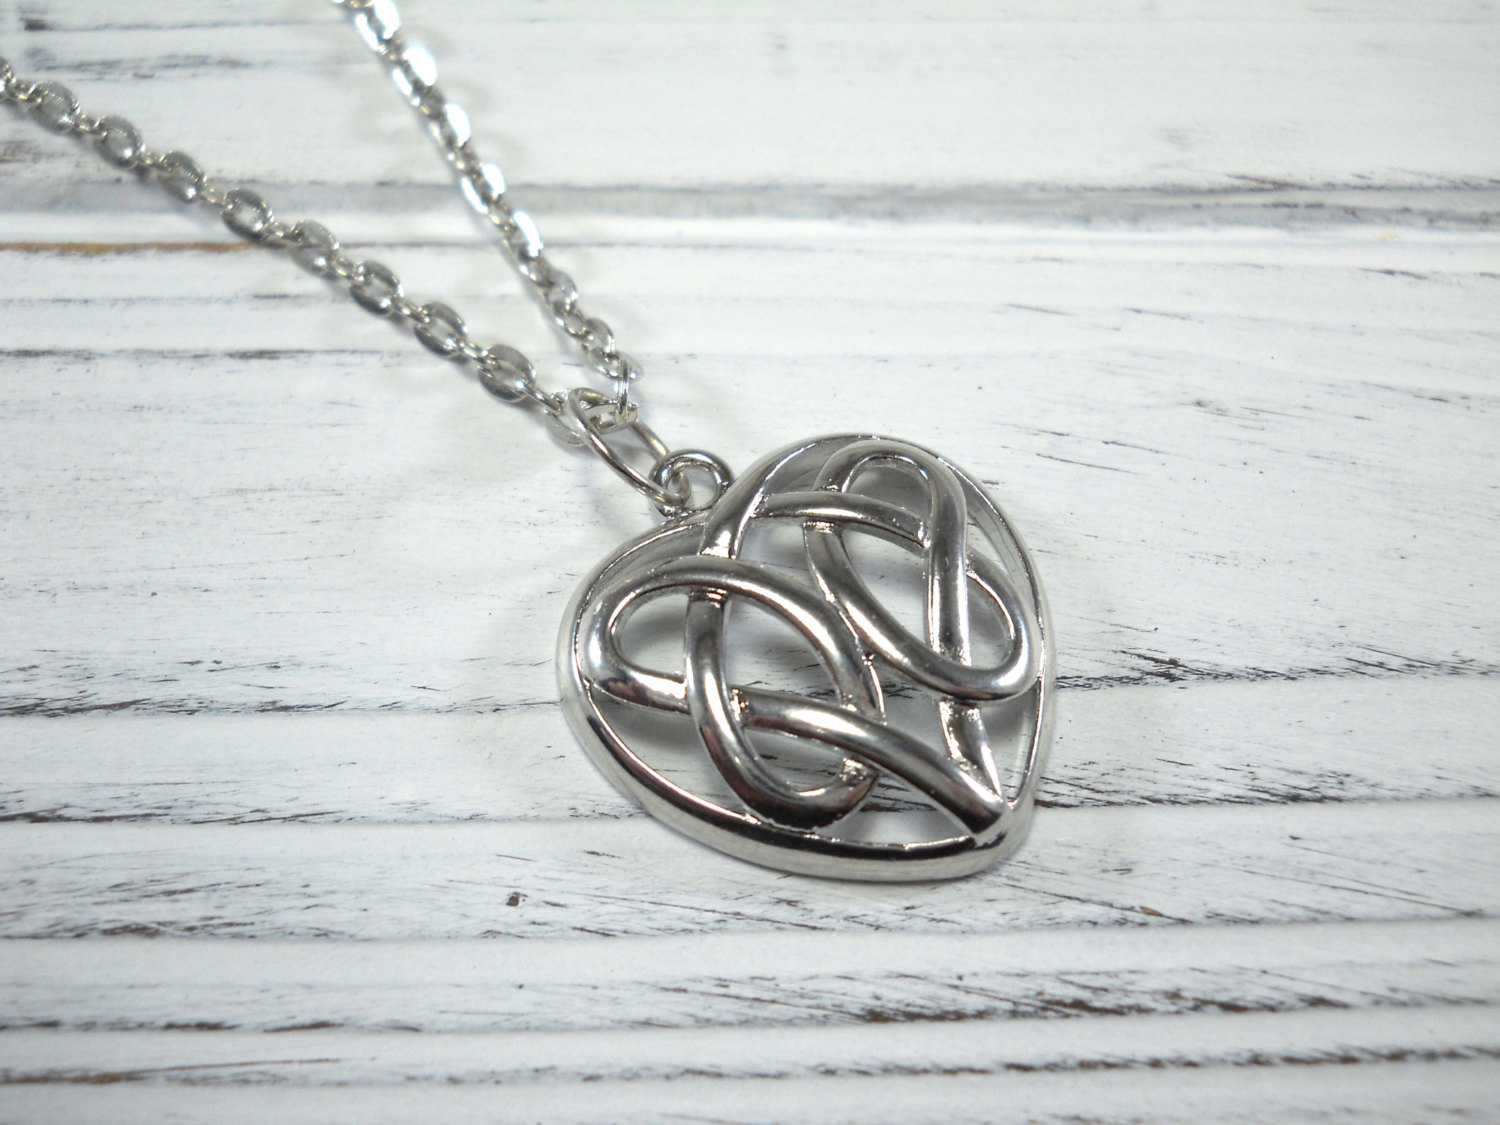 Heart Celtic Knot Pendant Necklace, Celtic Heart Pendant, Trinity Knot  Heart Necklace, Love Knot Charm, Woman's Heart Necklace, Celtic Knot Throughout Most Recently Released Knotted Heart Pendant Necklaces (Gallery 18 of 25)